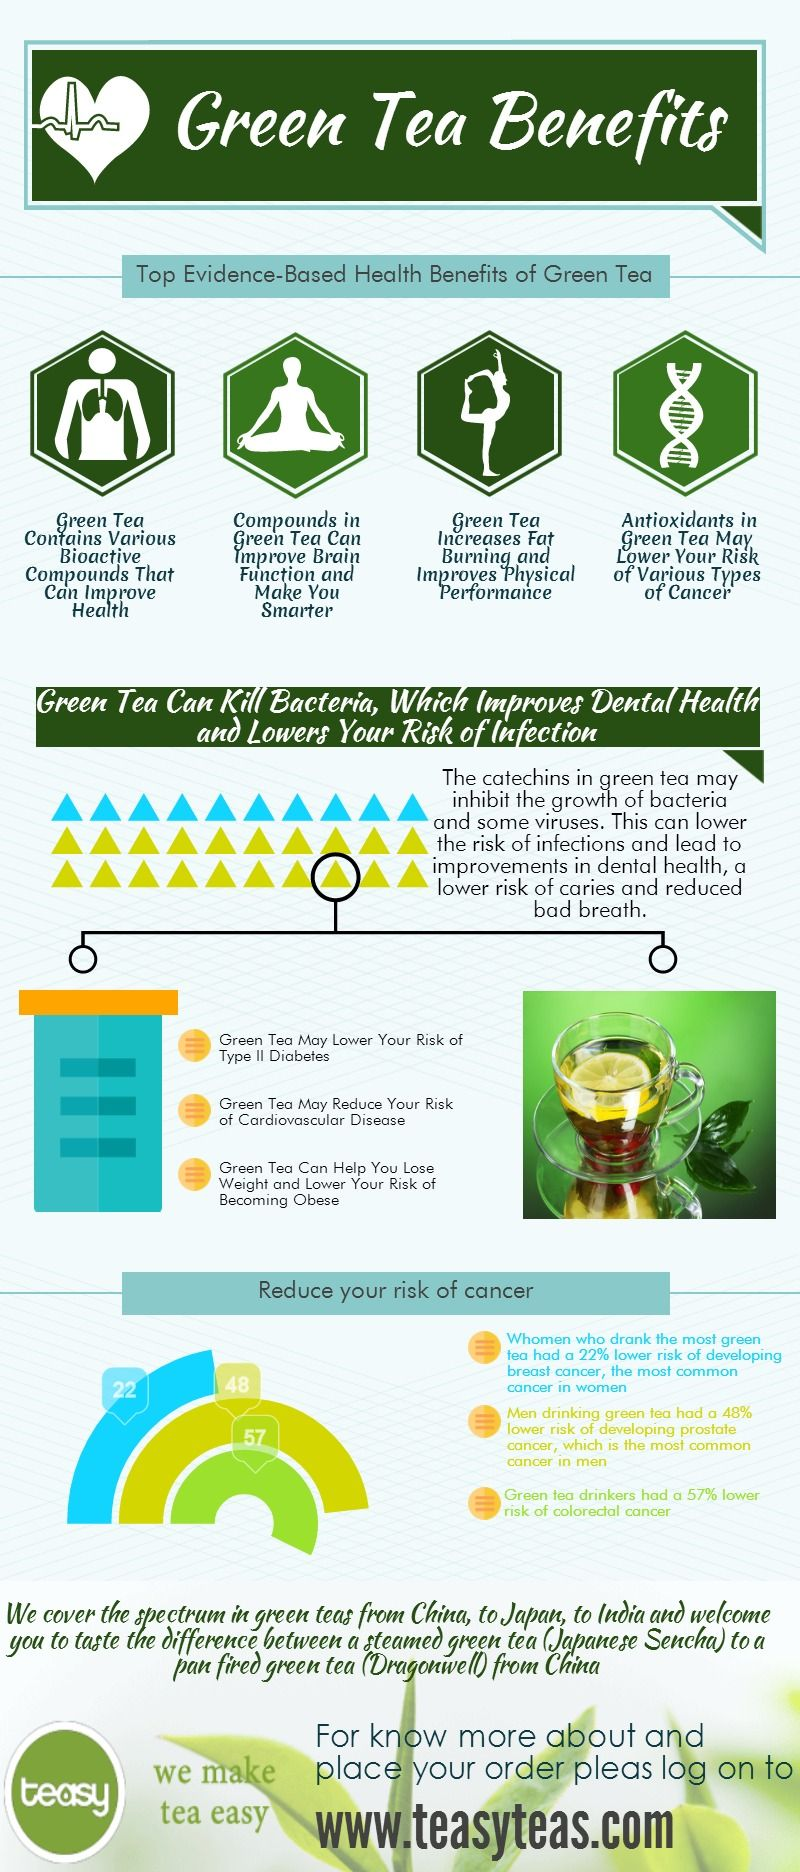 green tea benefits infographic | tea | pinterest | tea benefits